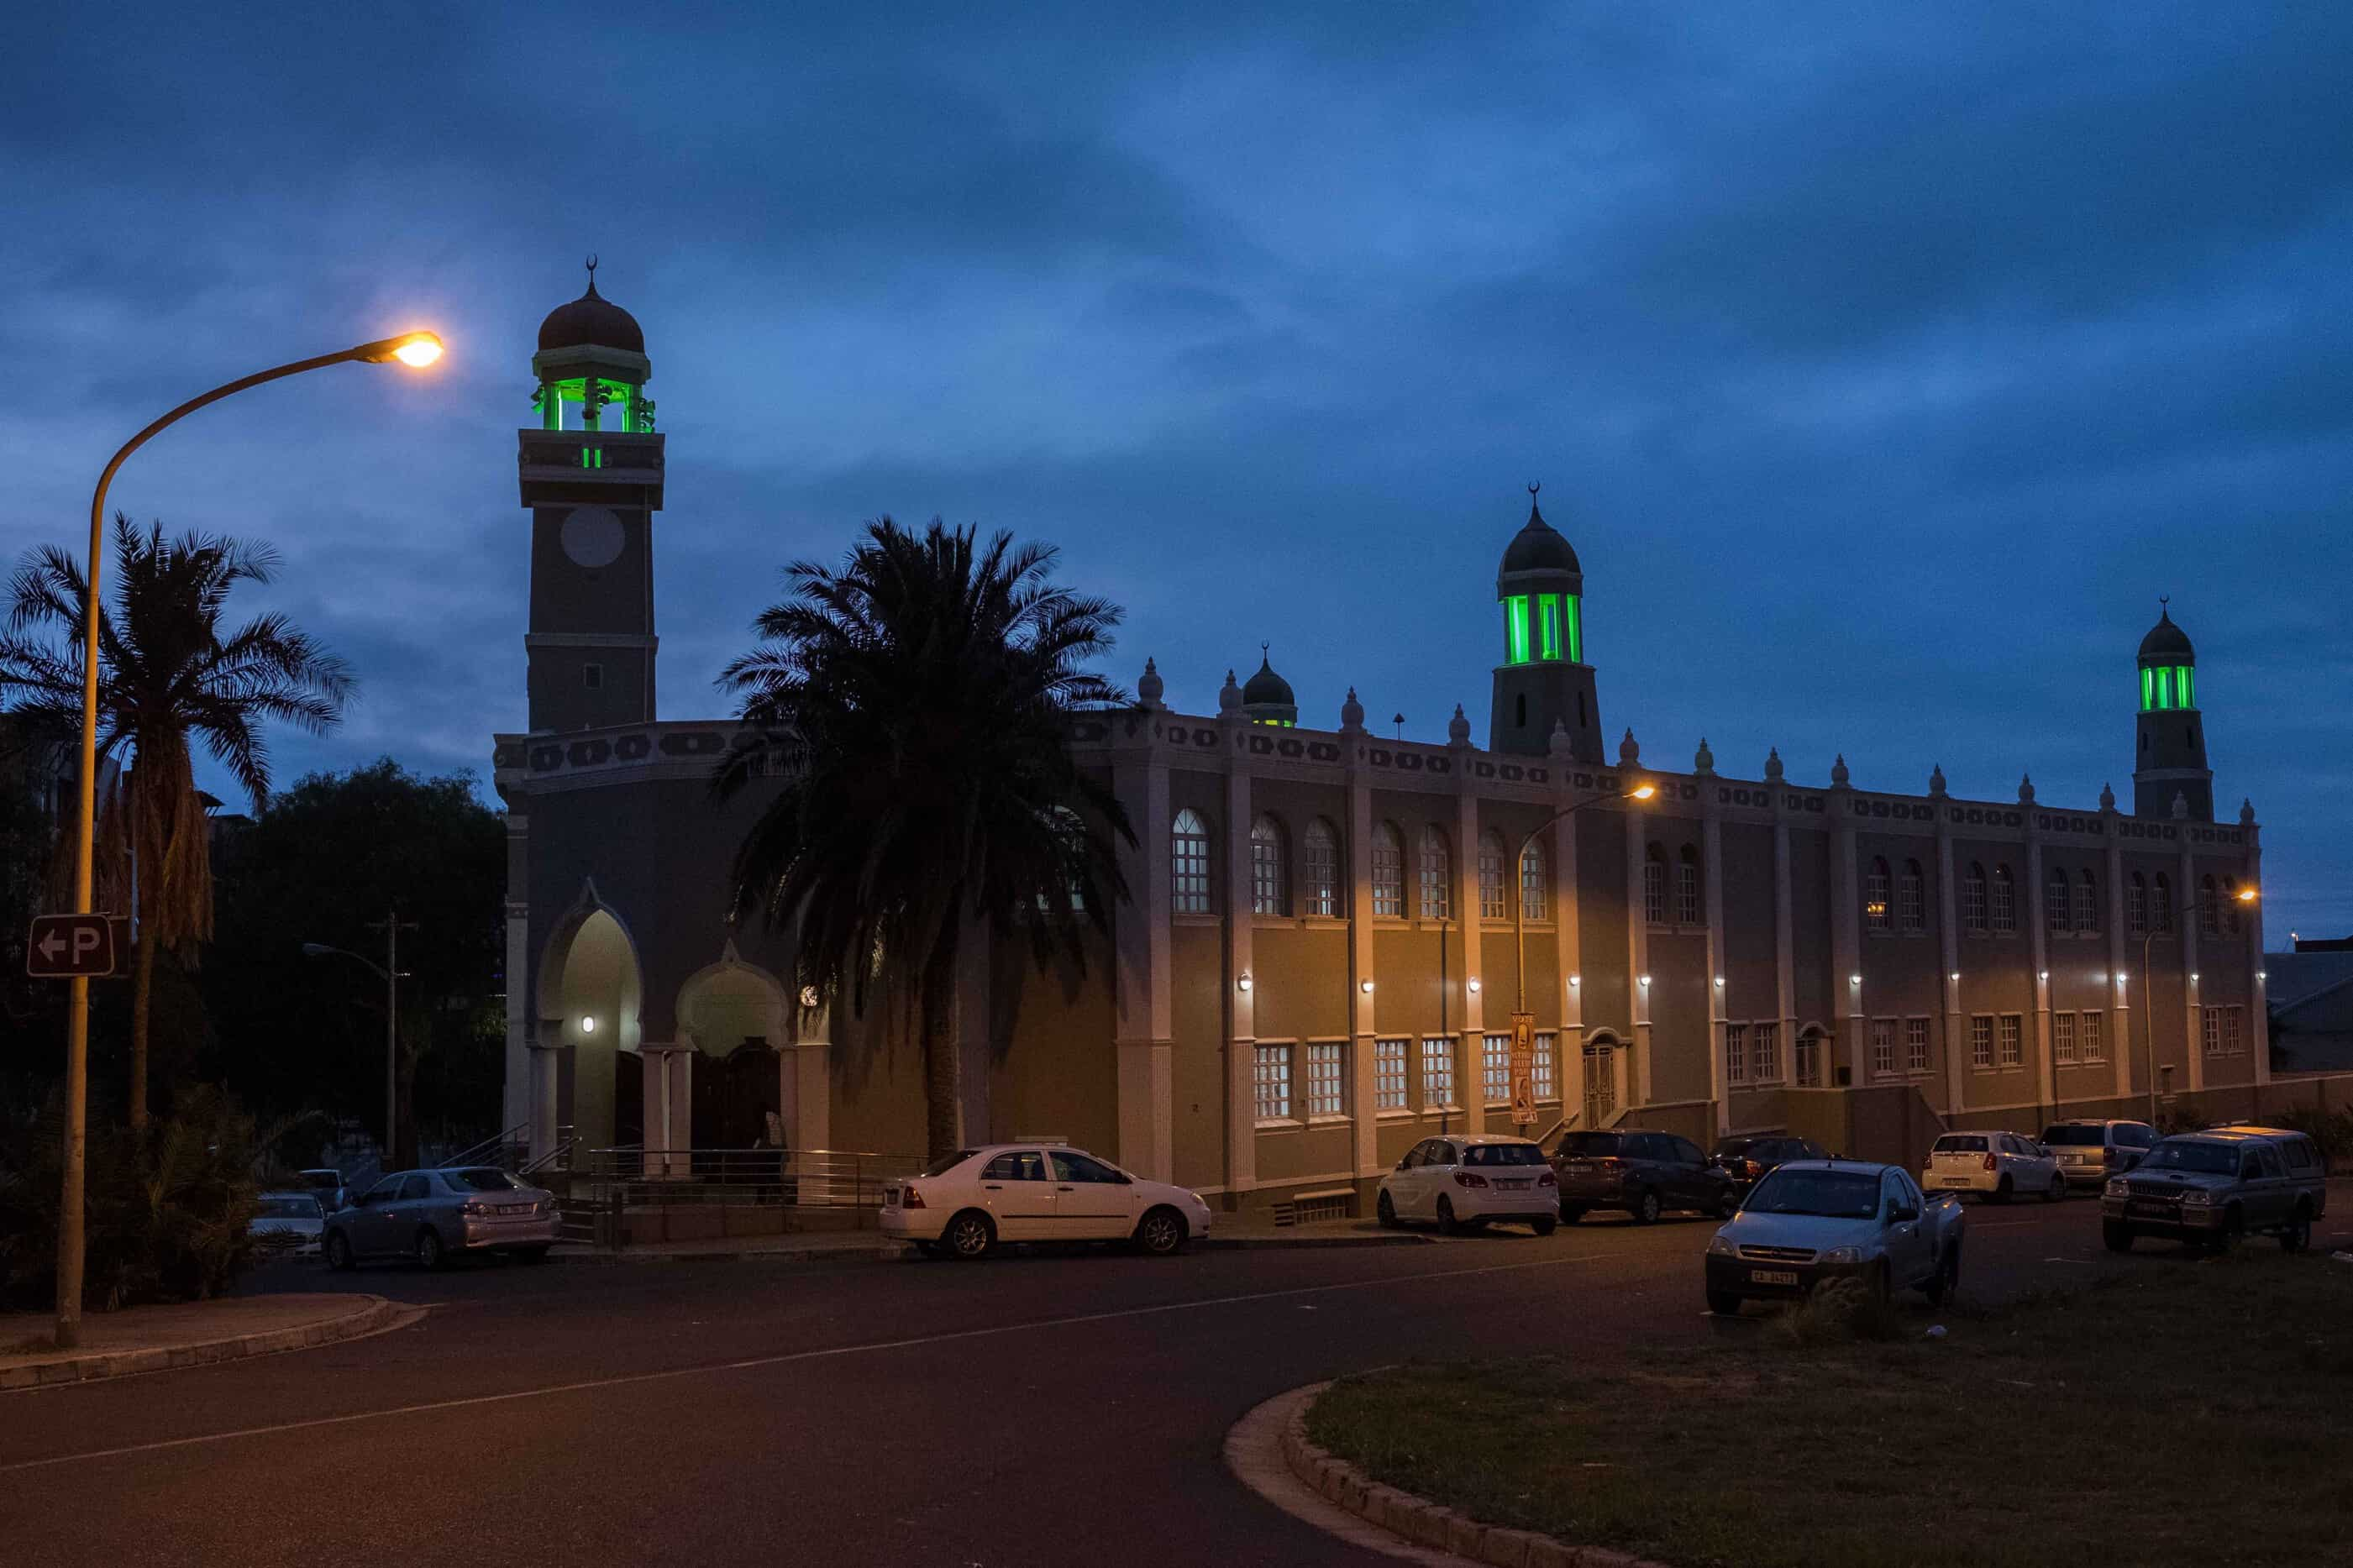 19 May 2019: The minarets are illuminated to alert people who cannot hear the athaan that it is time for prayer.